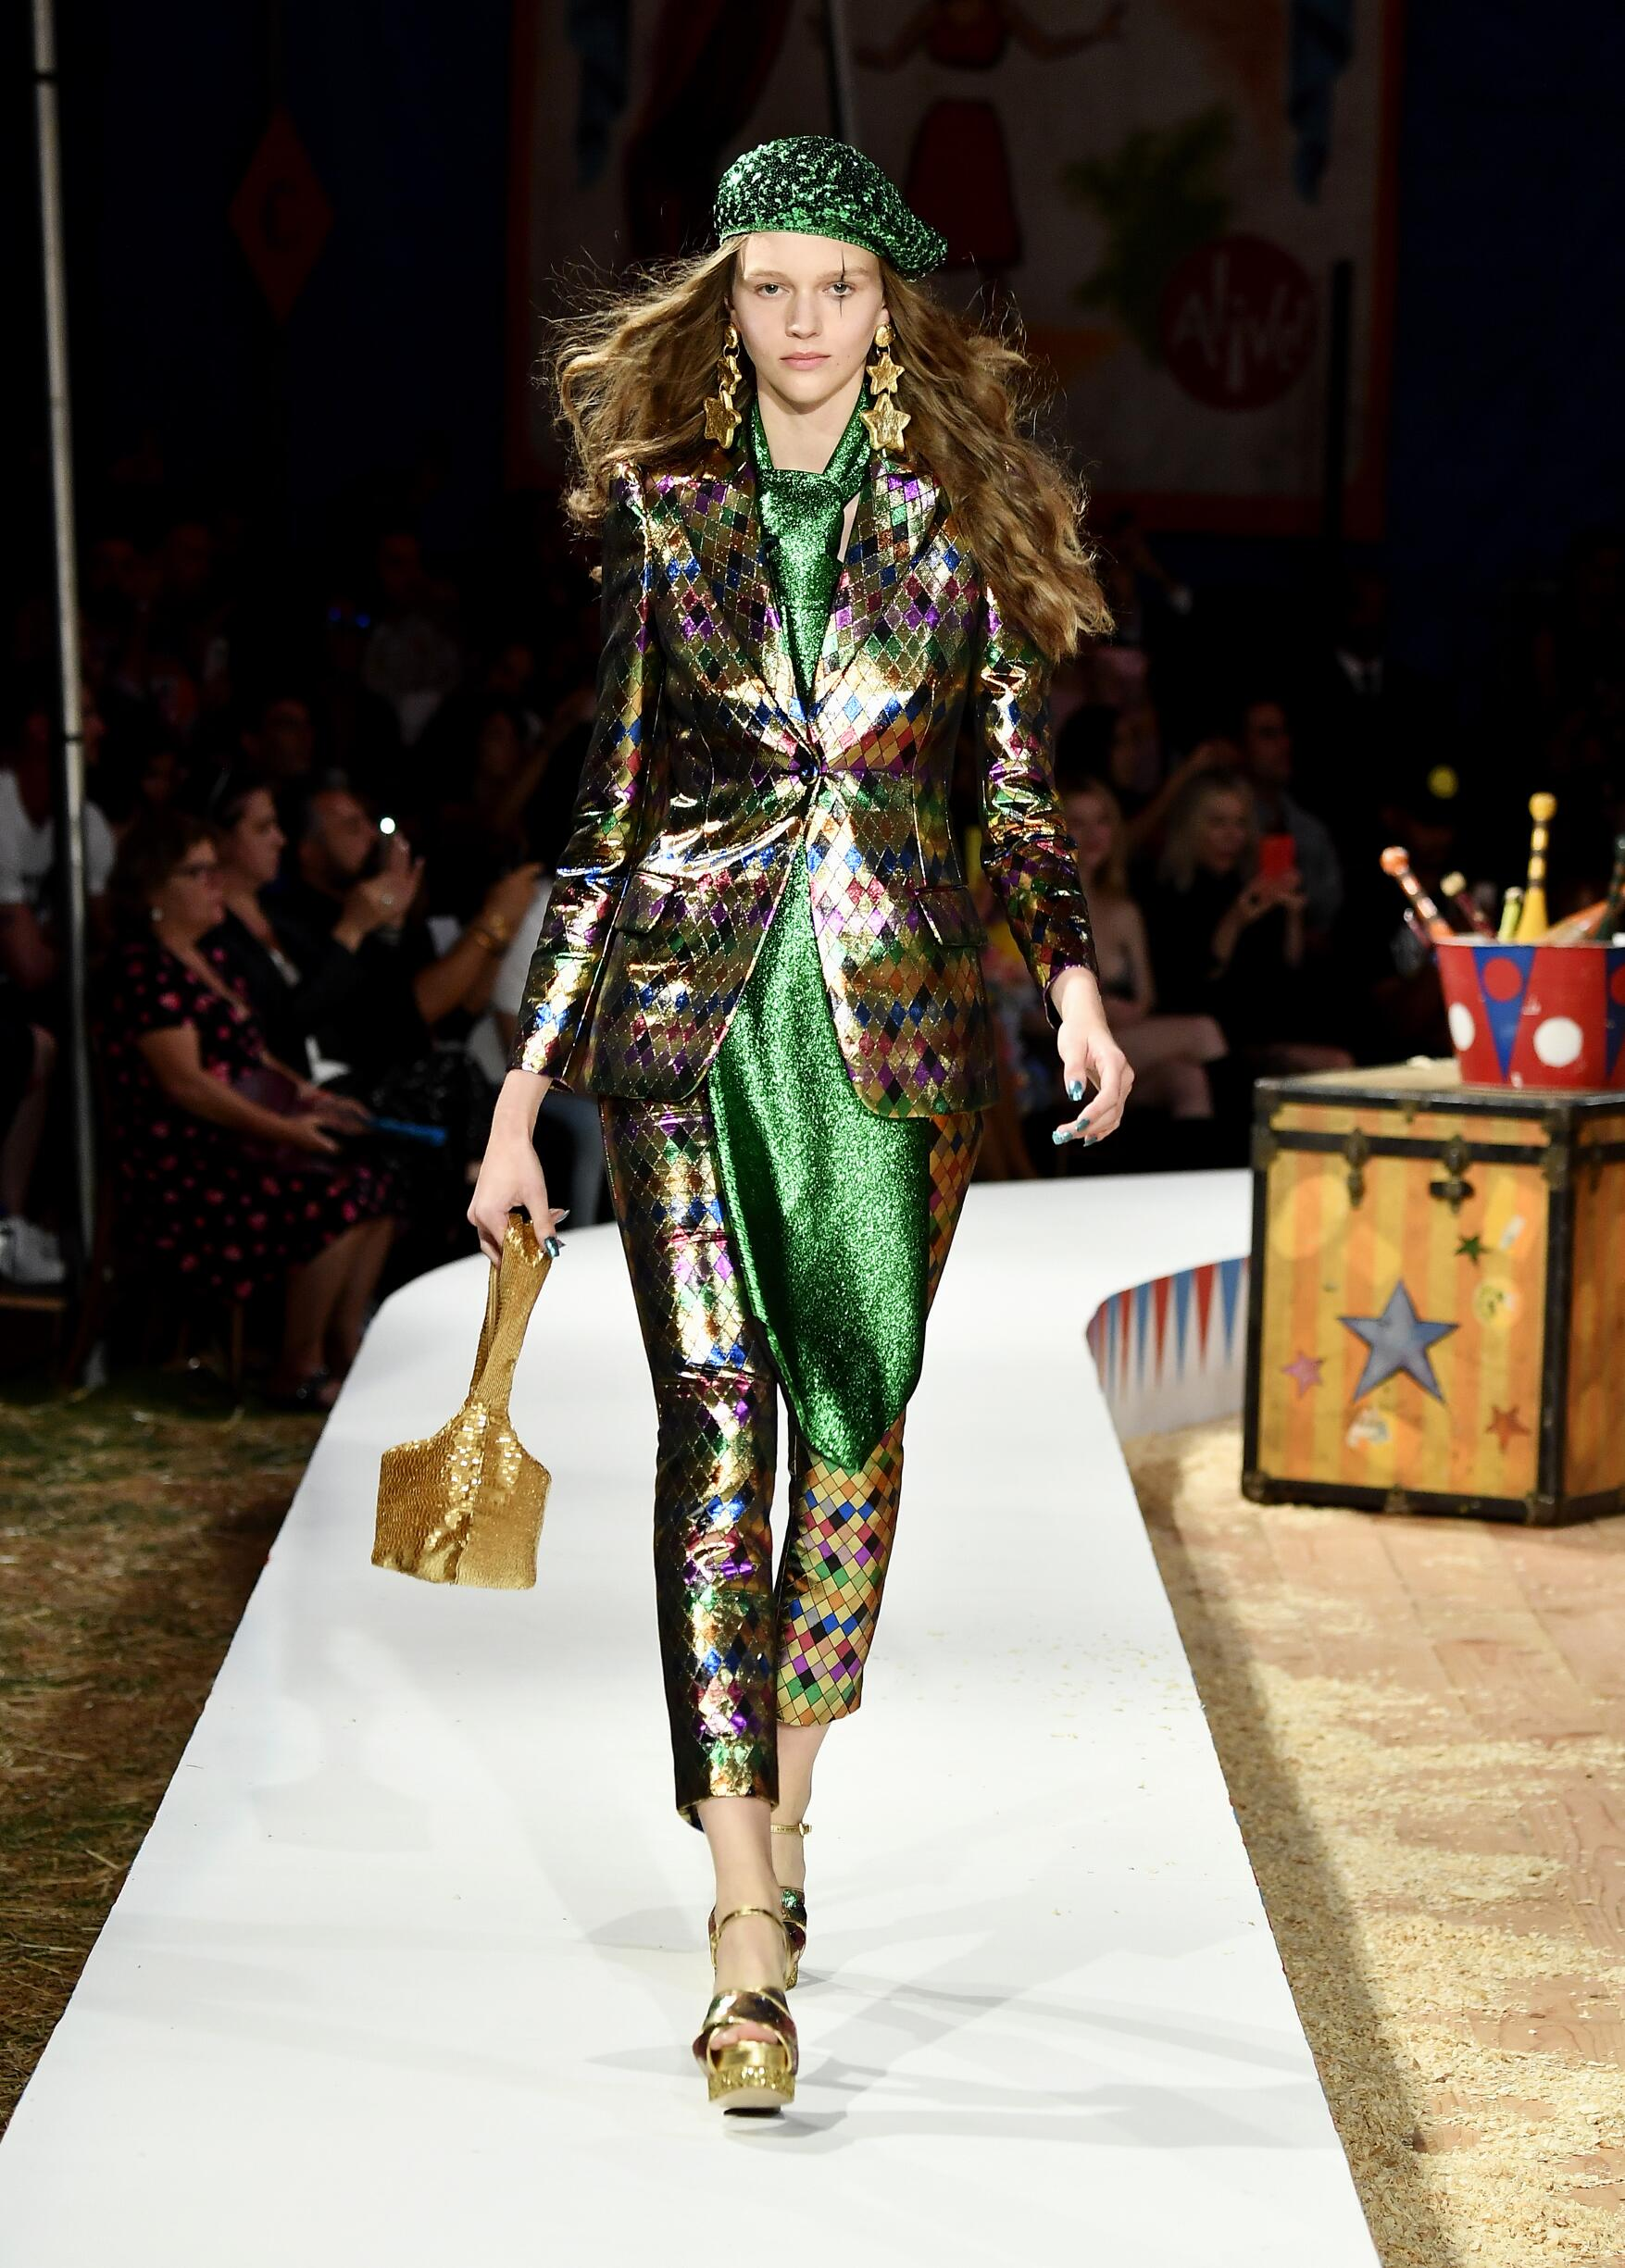 Moschino Spring Summer 2019 Menswear and Women's Resort Collection Look 38 Los Angeles